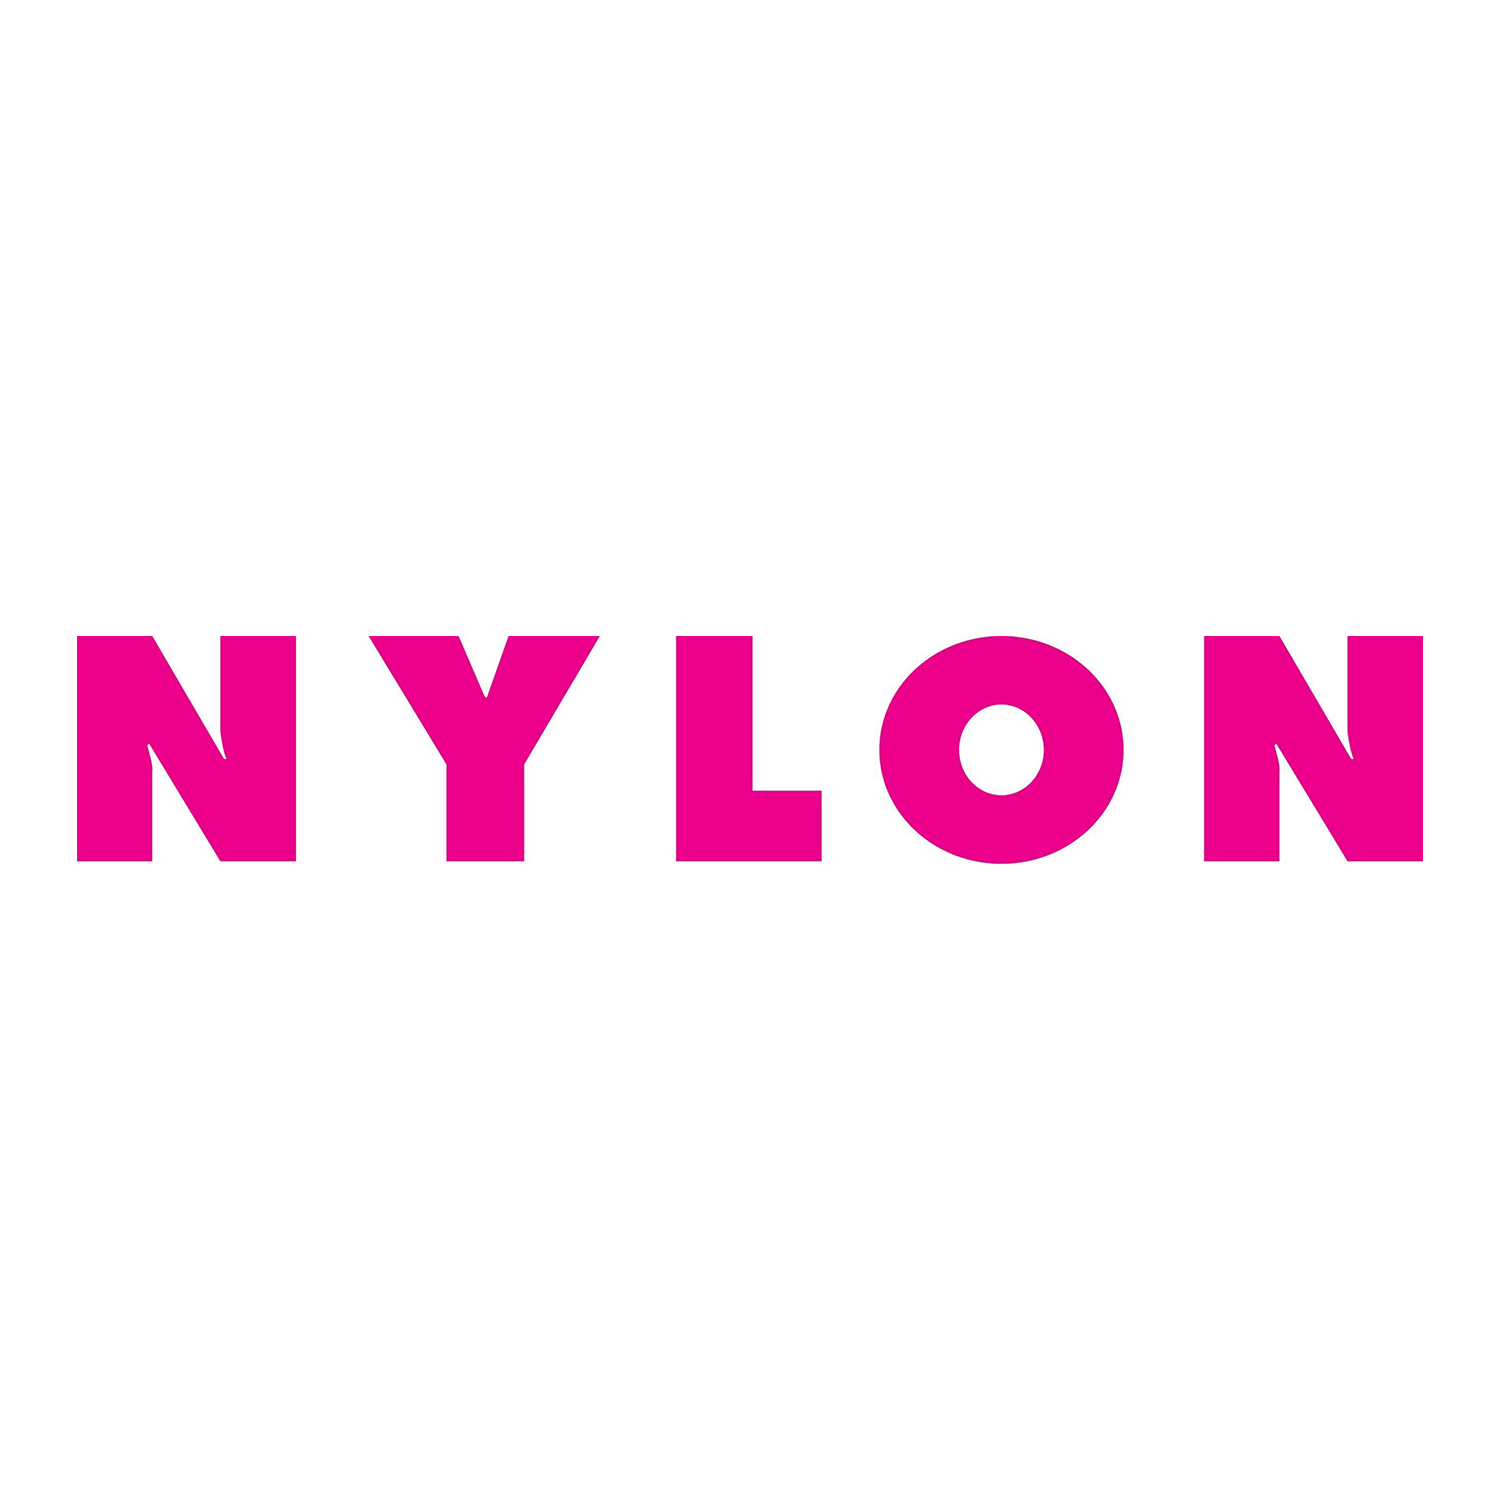 Go Behind The Scenes Of The Largest New York Fashion Week Runway Event Celebrating Queer Style     Nylon Magazine   September 2017